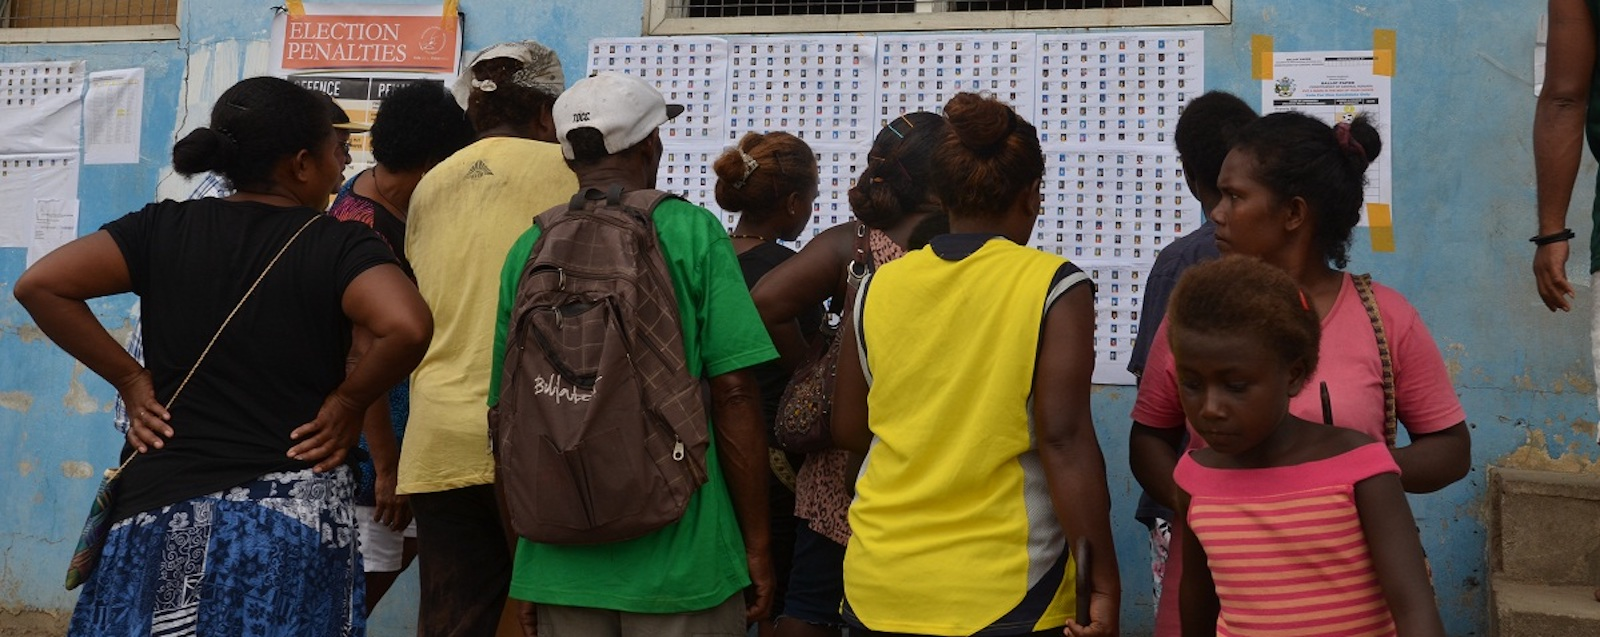 Voters at the 2014 election (photo: RAMSI Images/ Flickr)